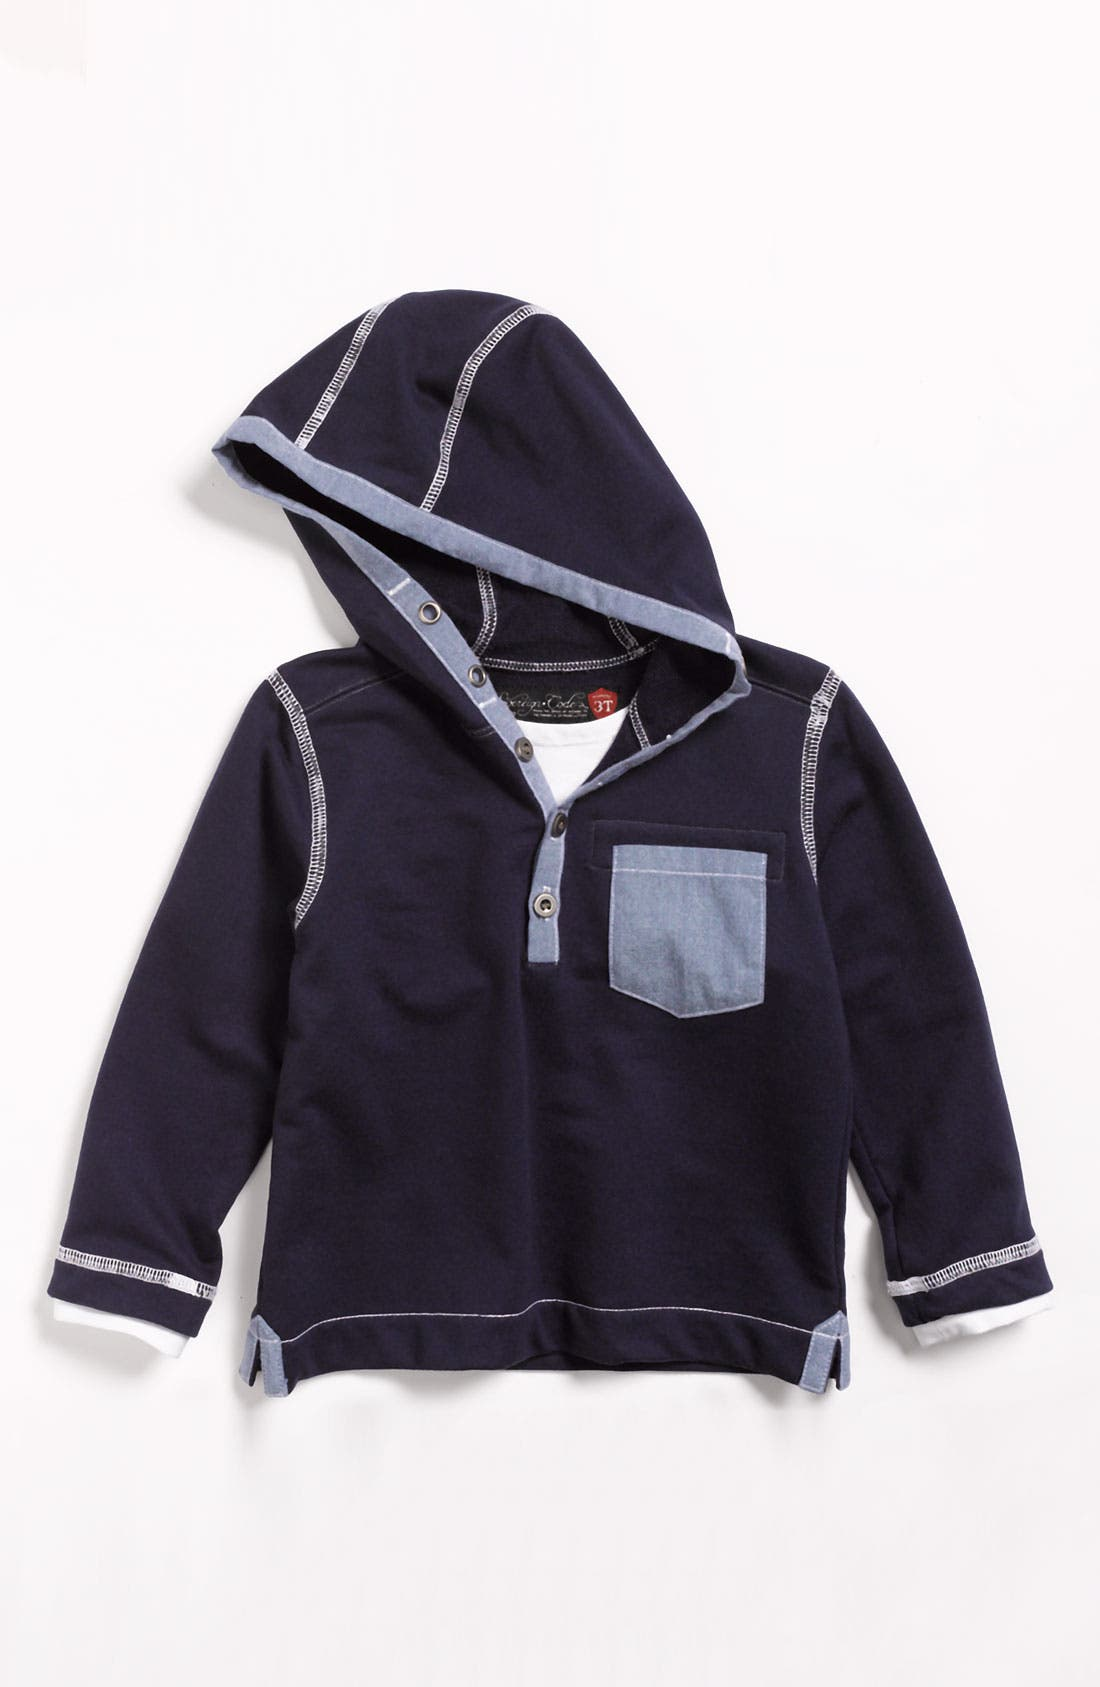 Alternate Image 1 Selected - Sovereign Code Henley Hoodie (Toddler Boys)